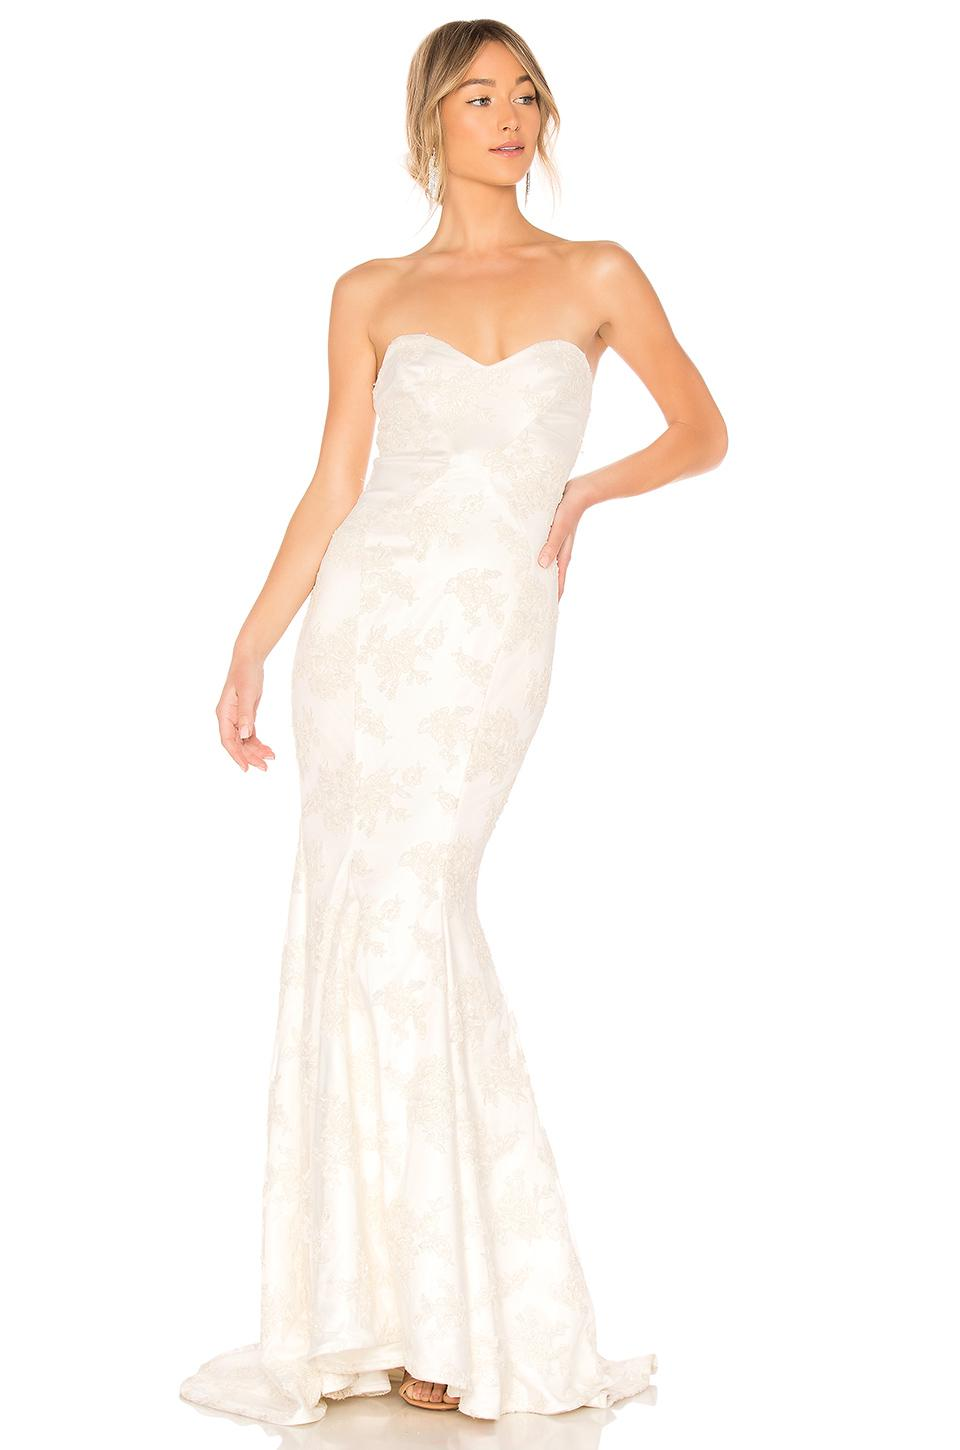 2a57db6c3631 Lyst - Michael Costello X Revolve Amelia Gown in White